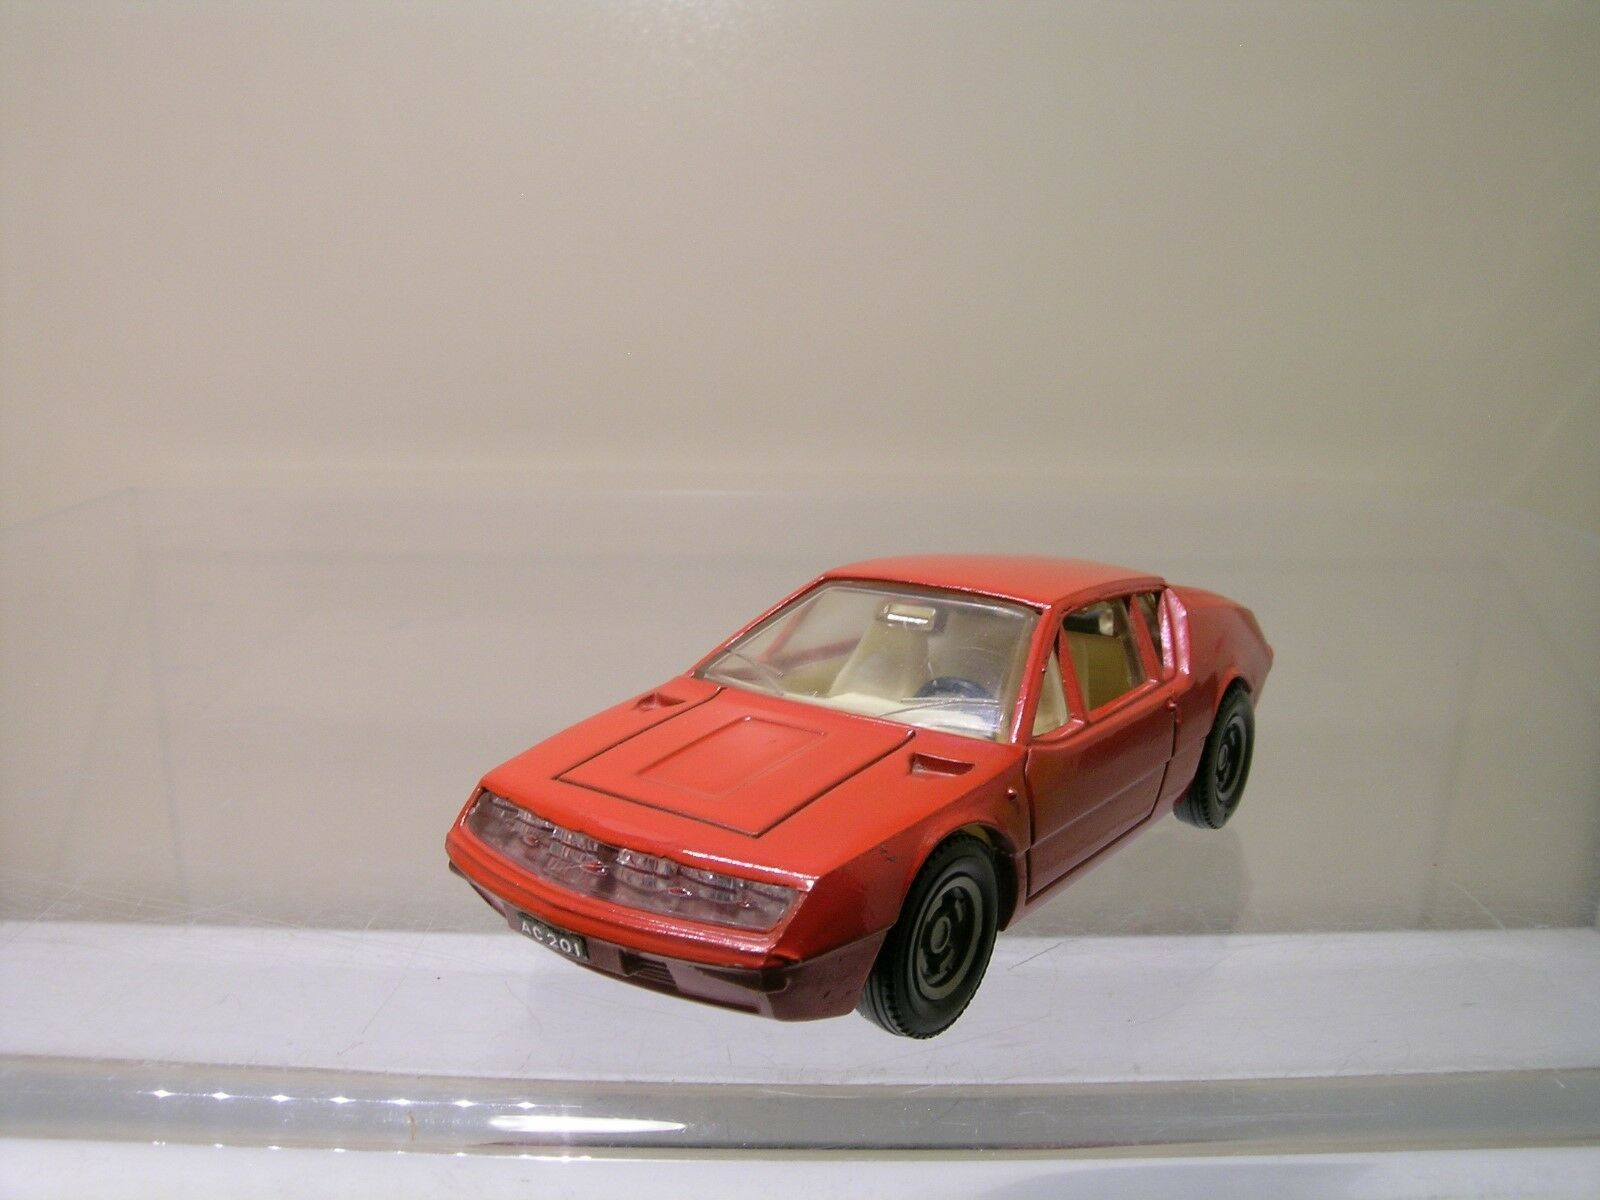 DINKY TOYS FRANCE 1411 ALPINE RENAULT A310 BRIGHT-rouge NEAR-MINT SCALE 1 43